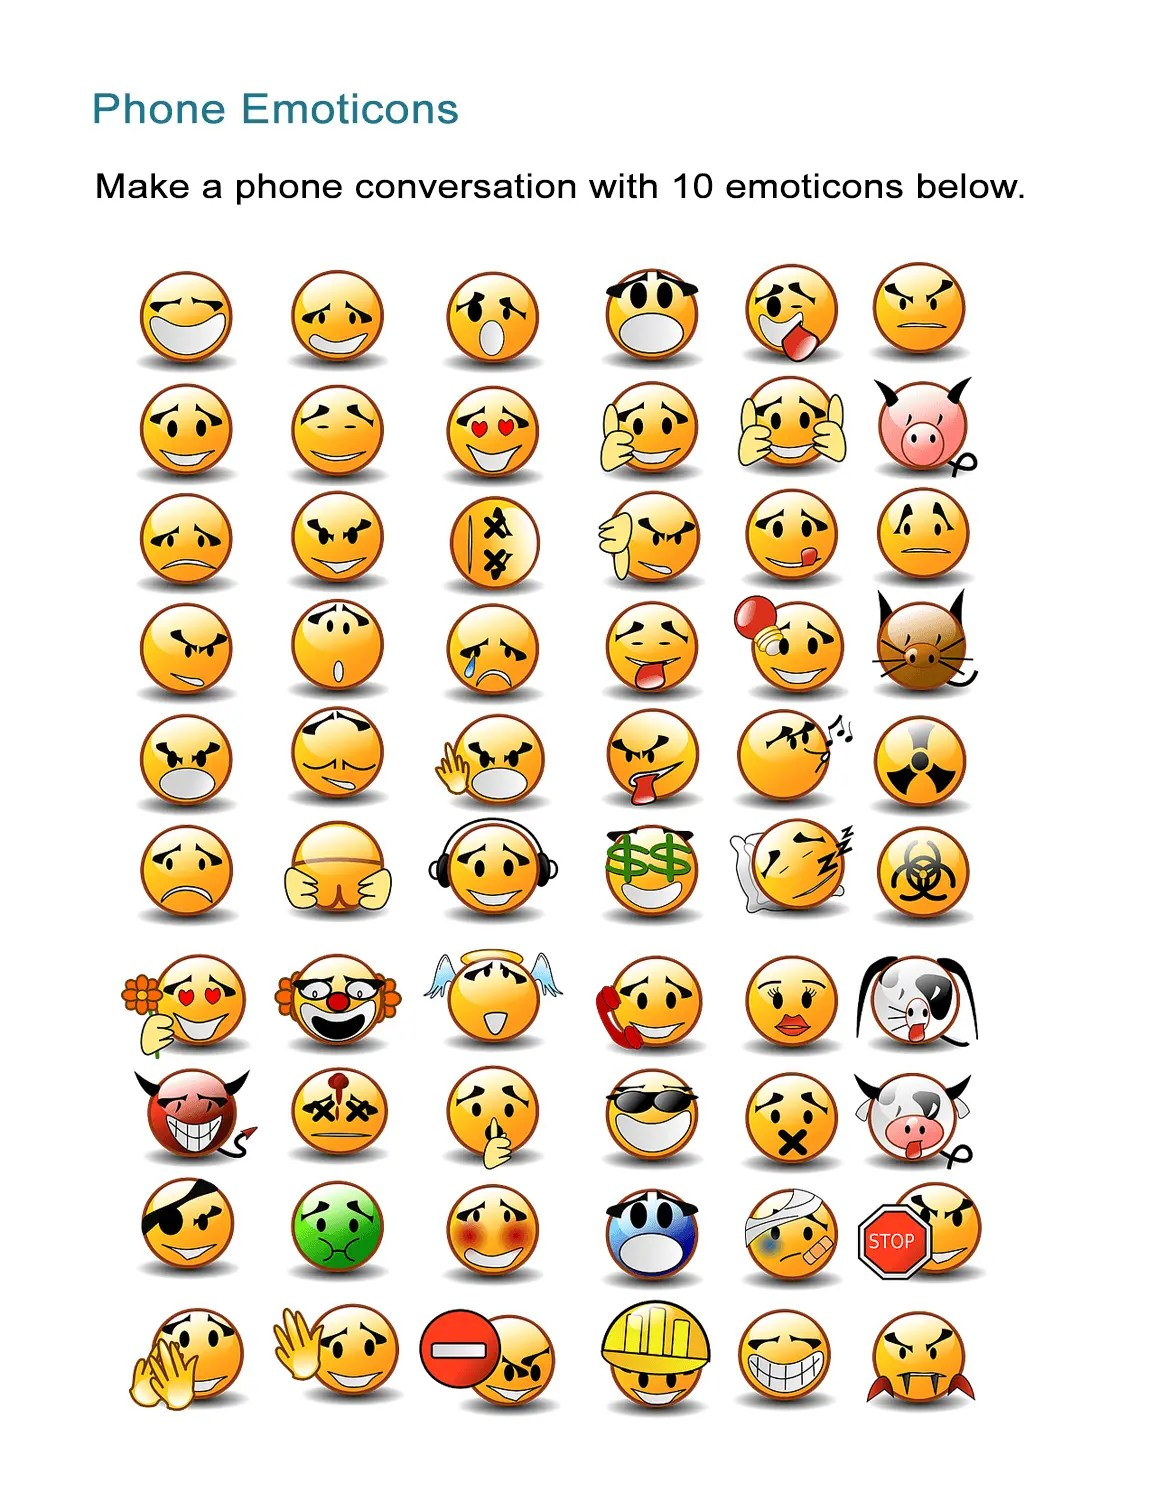 Adjectives That Describe Me Phone Emoticon Emotions